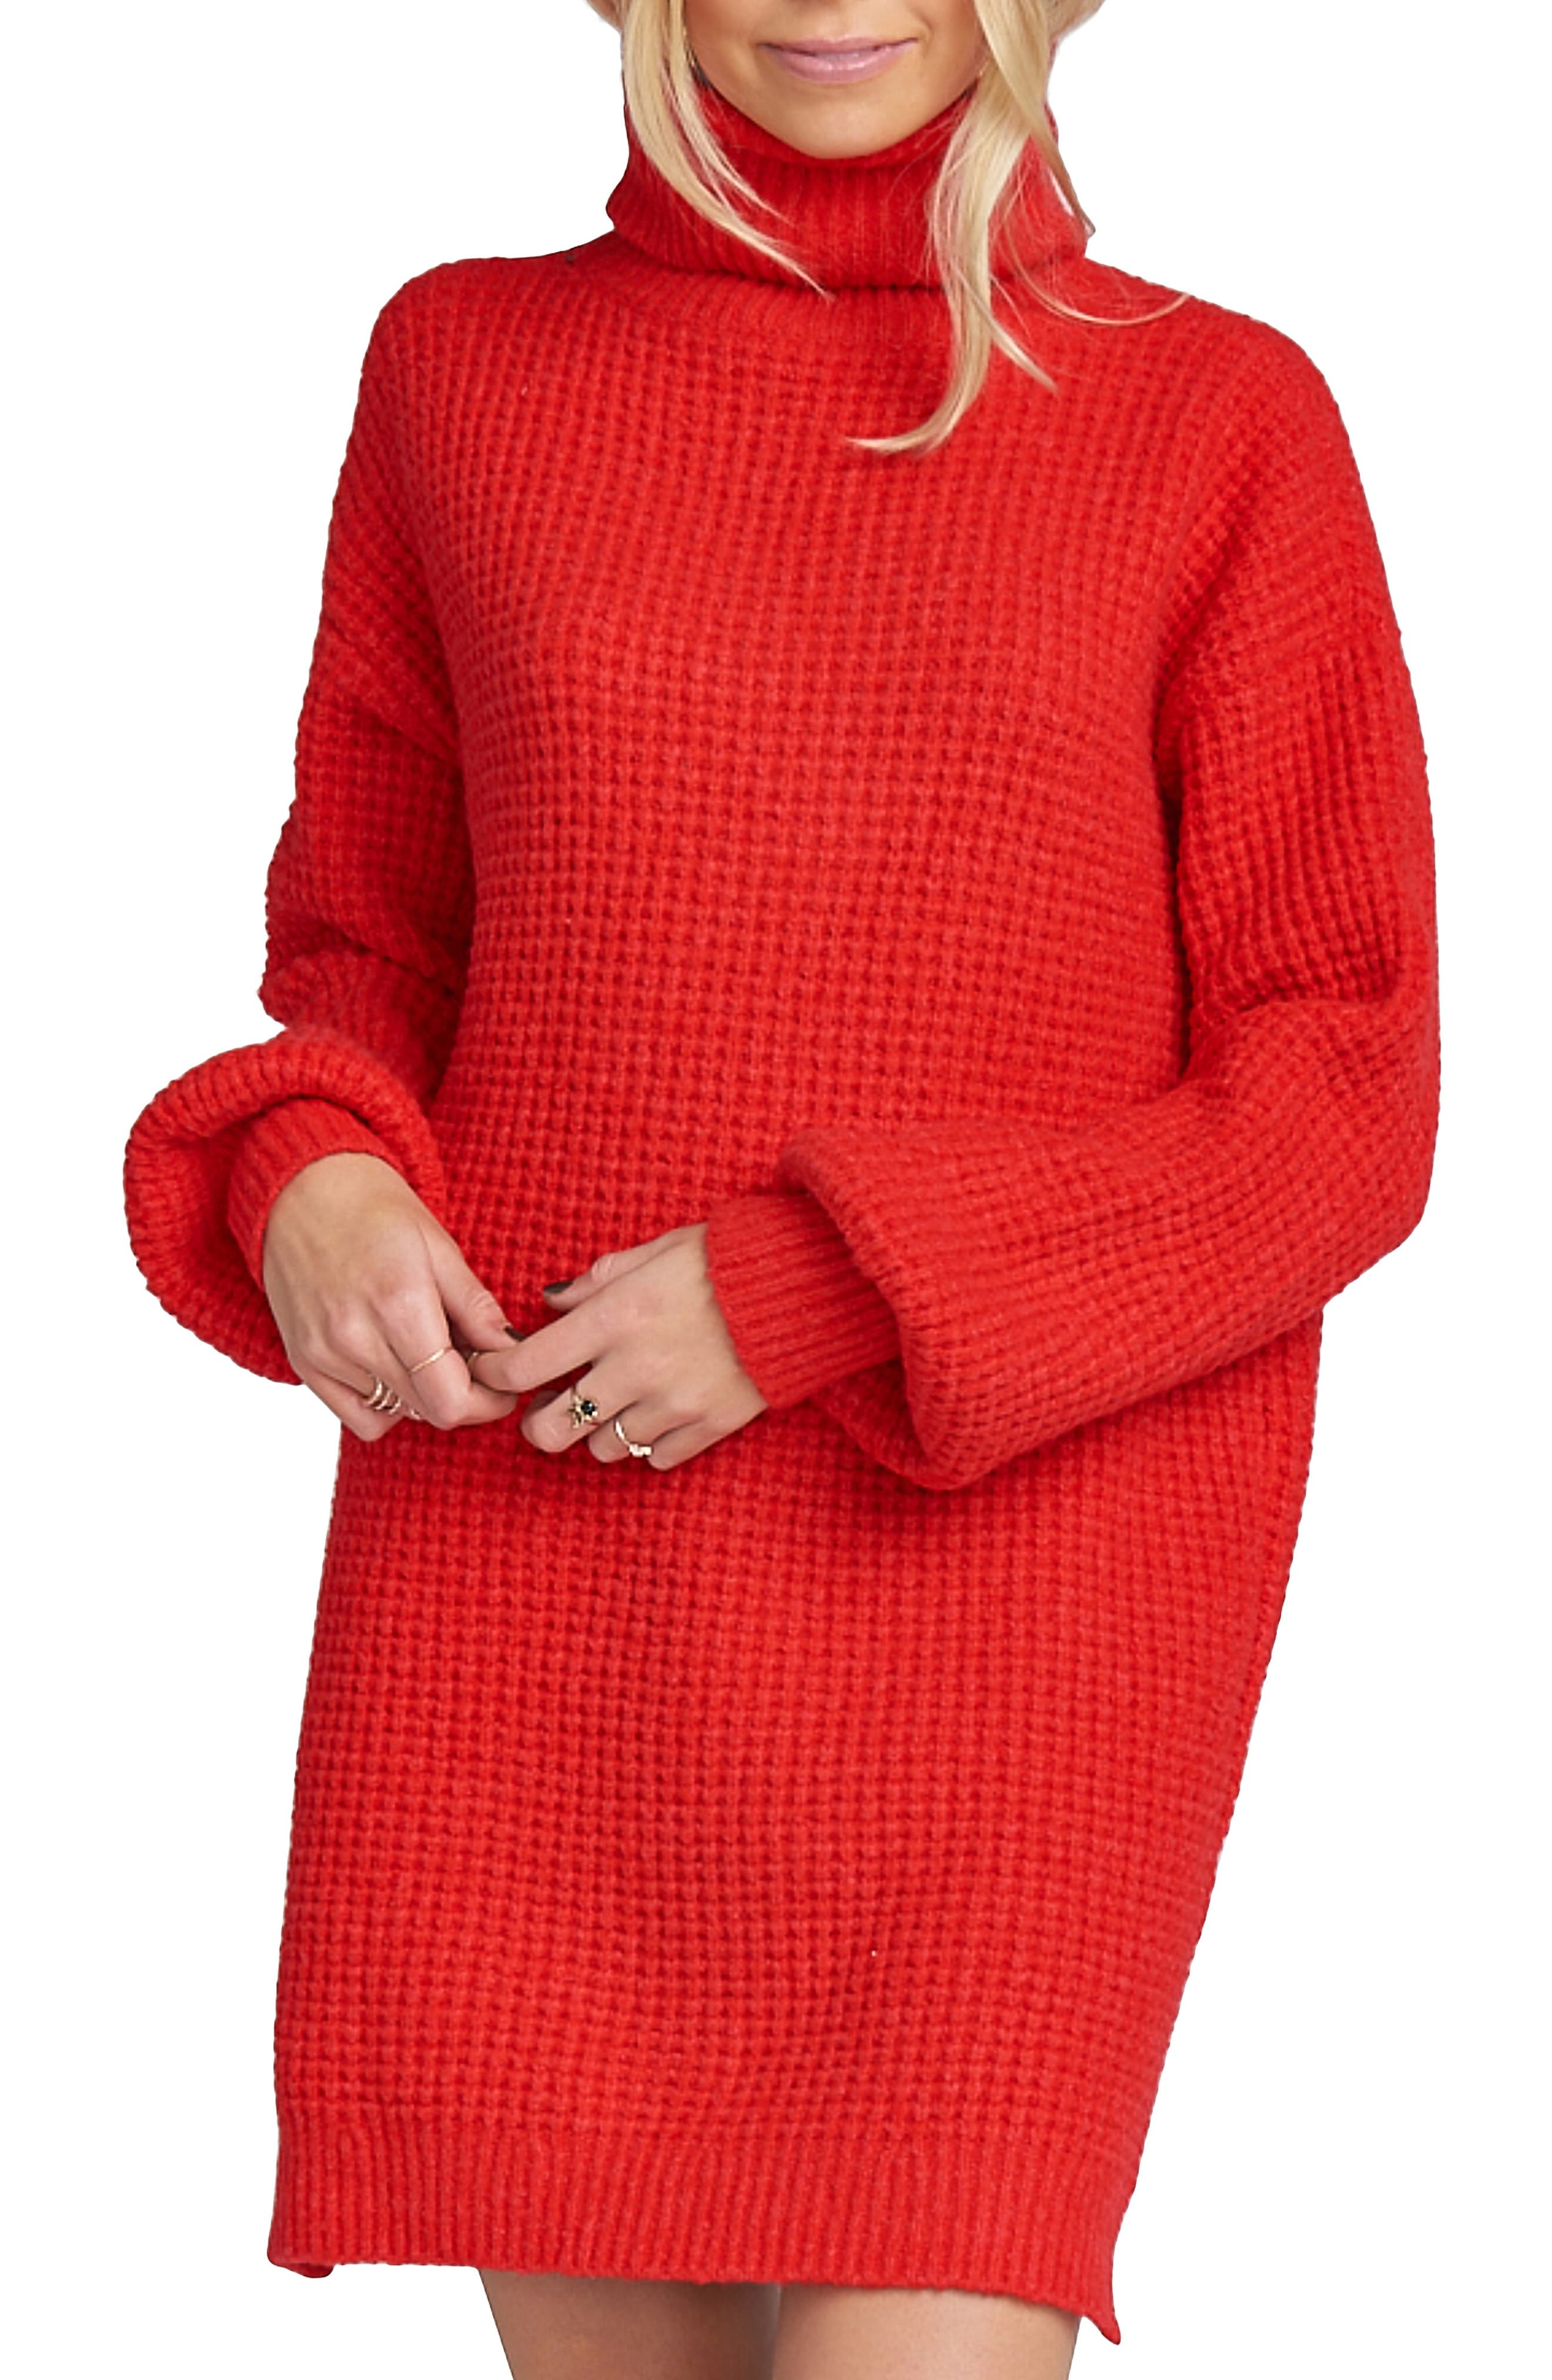 Holly Red Sweater Dress,                             Alternate thumbnail 6, color,                             600